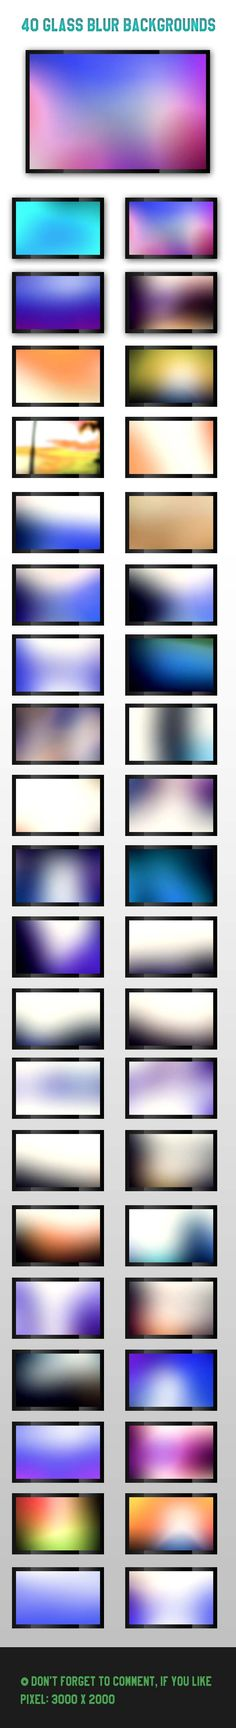 40 Glass Blur Backgrounds [Freebie] | SMFAPLUS - The Online IT Plus Magazine